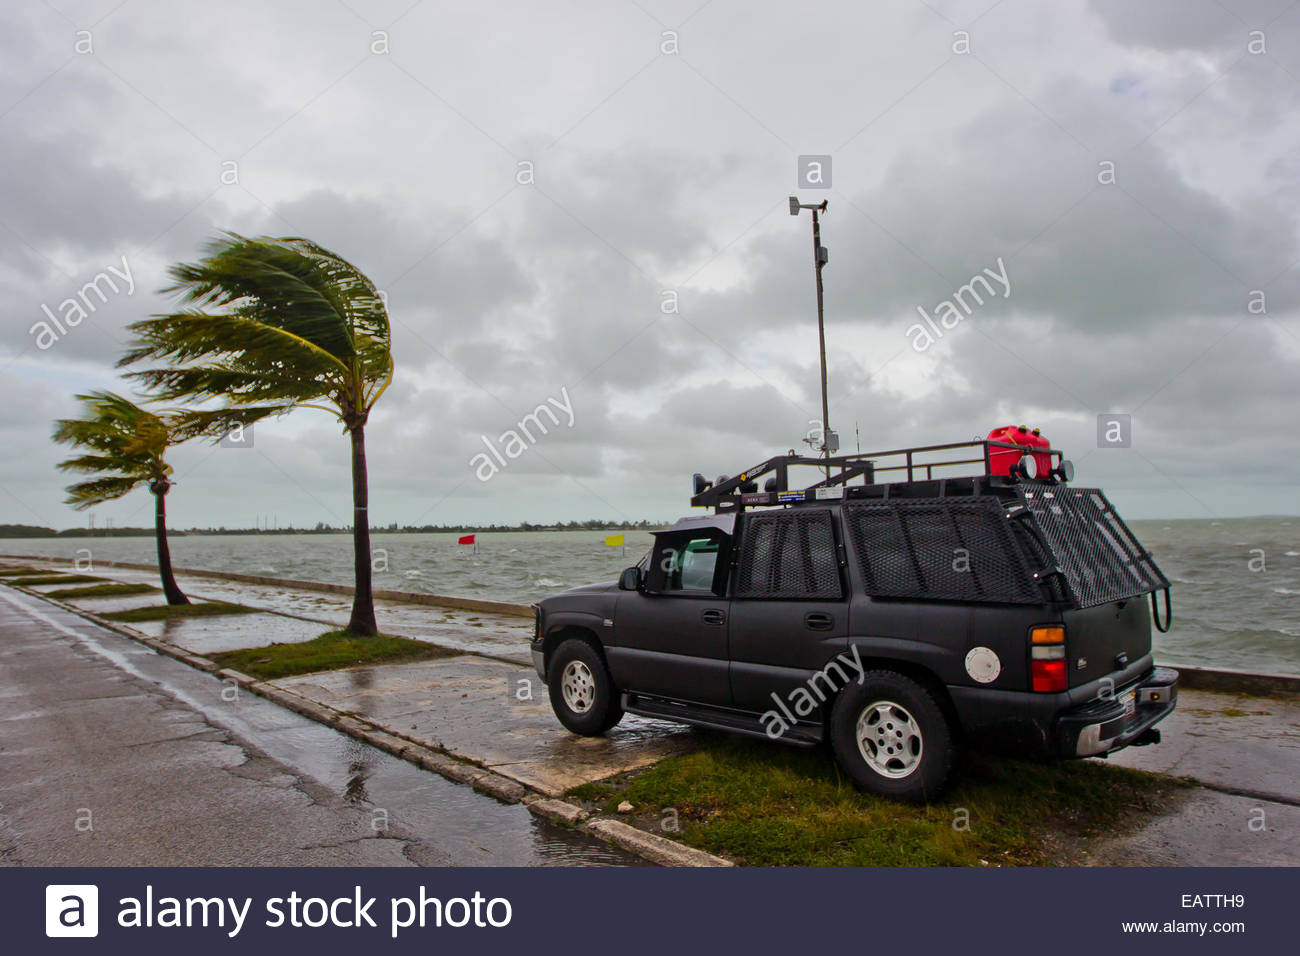 The H.E.R.V., Hurricane Eyewall Research Vehicle, collecting scientific data from Hurricane Isaac. - Stock Image